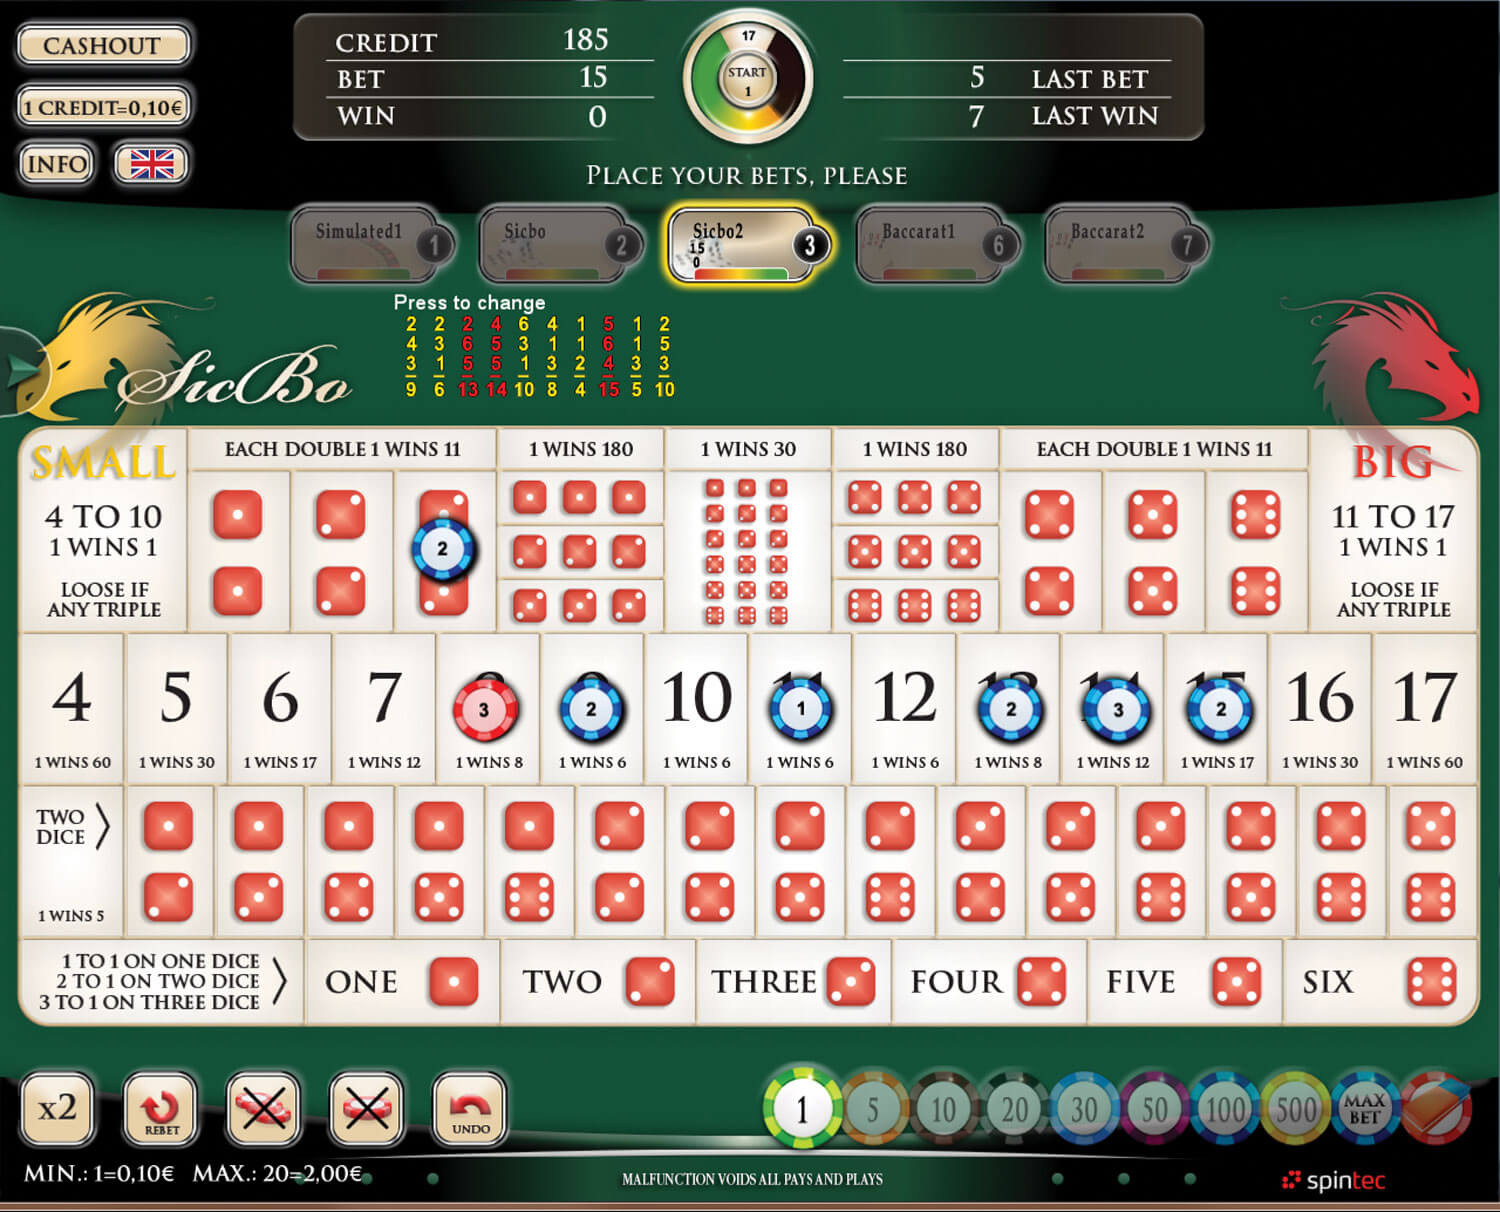 What does blind mean in texas holdem